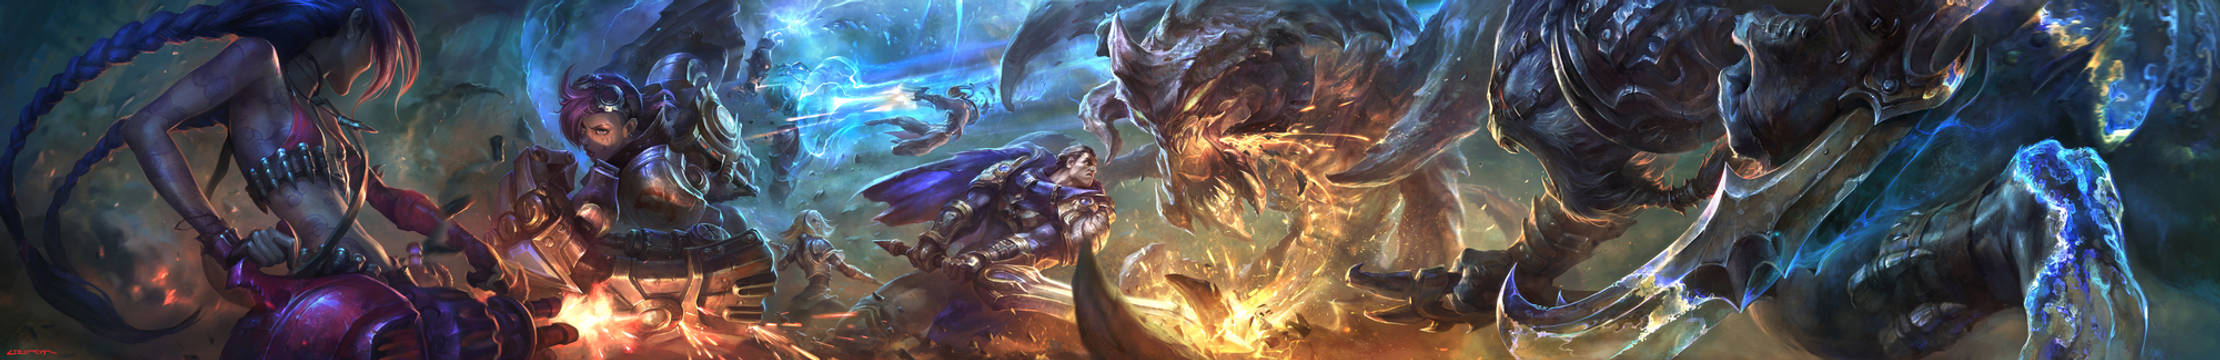 League of legends Youtube banner